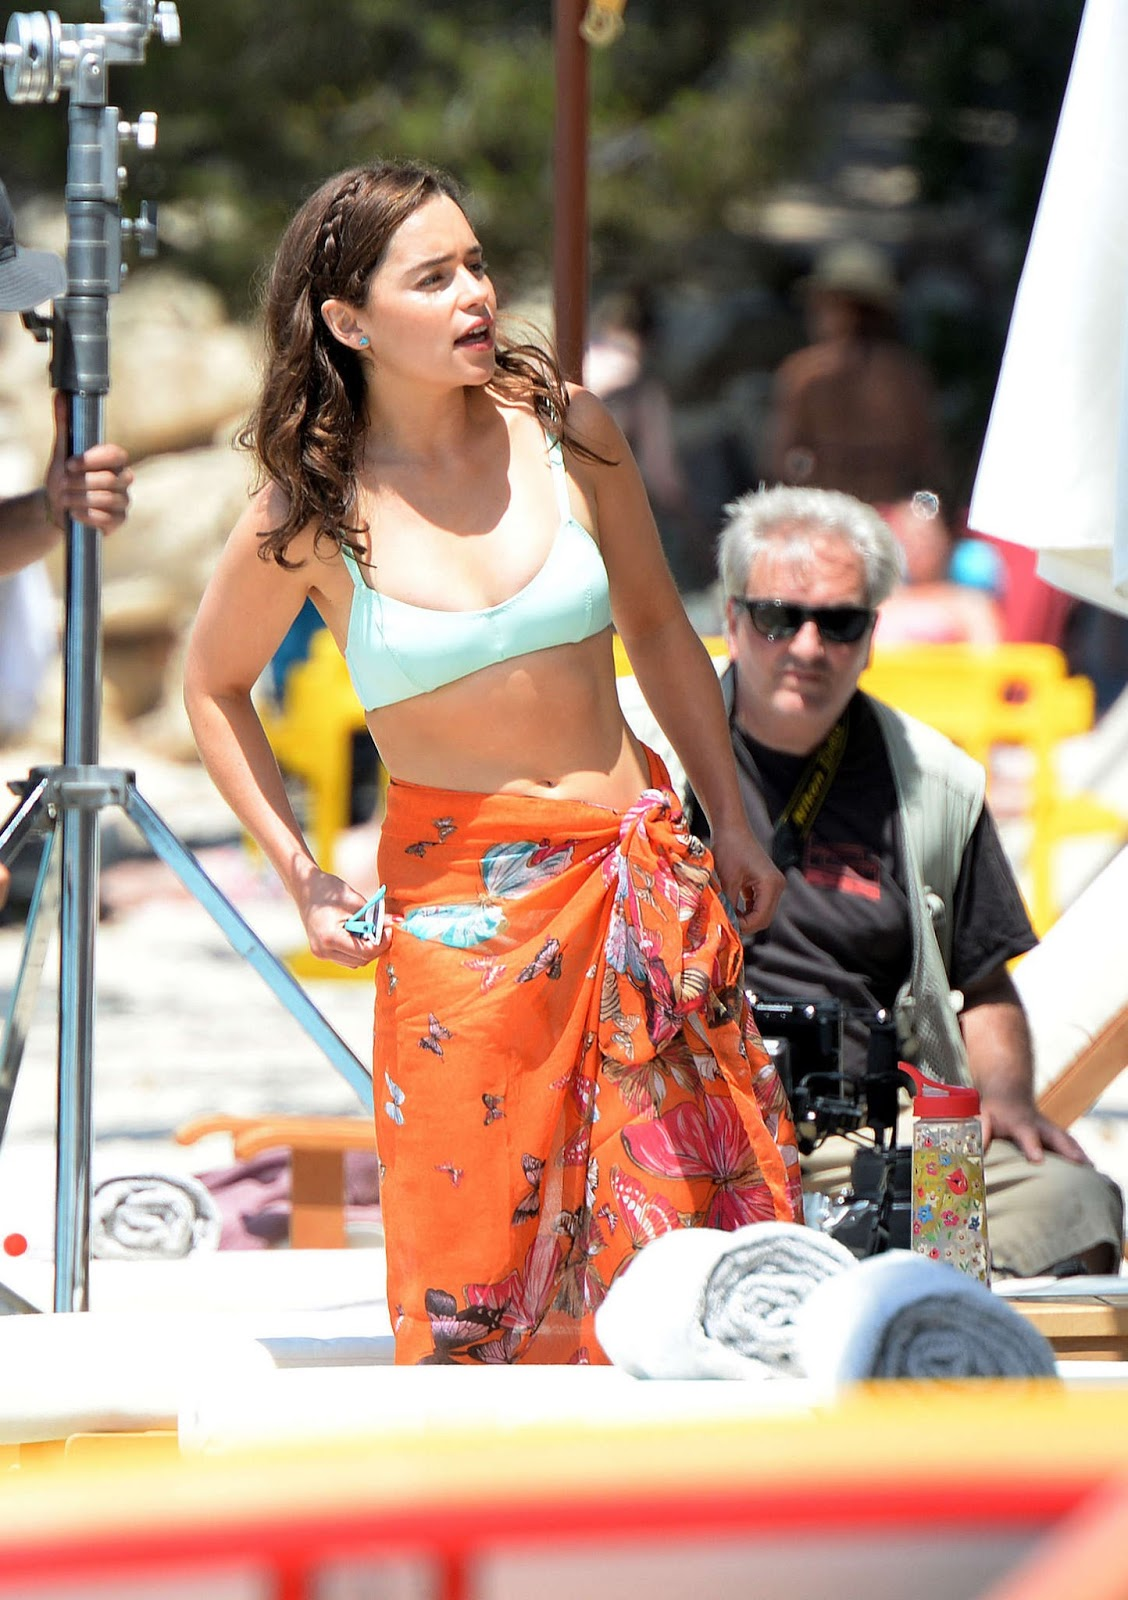 Emilia Clarke in a blue bikini on the set of 'Me Before You' in Spain